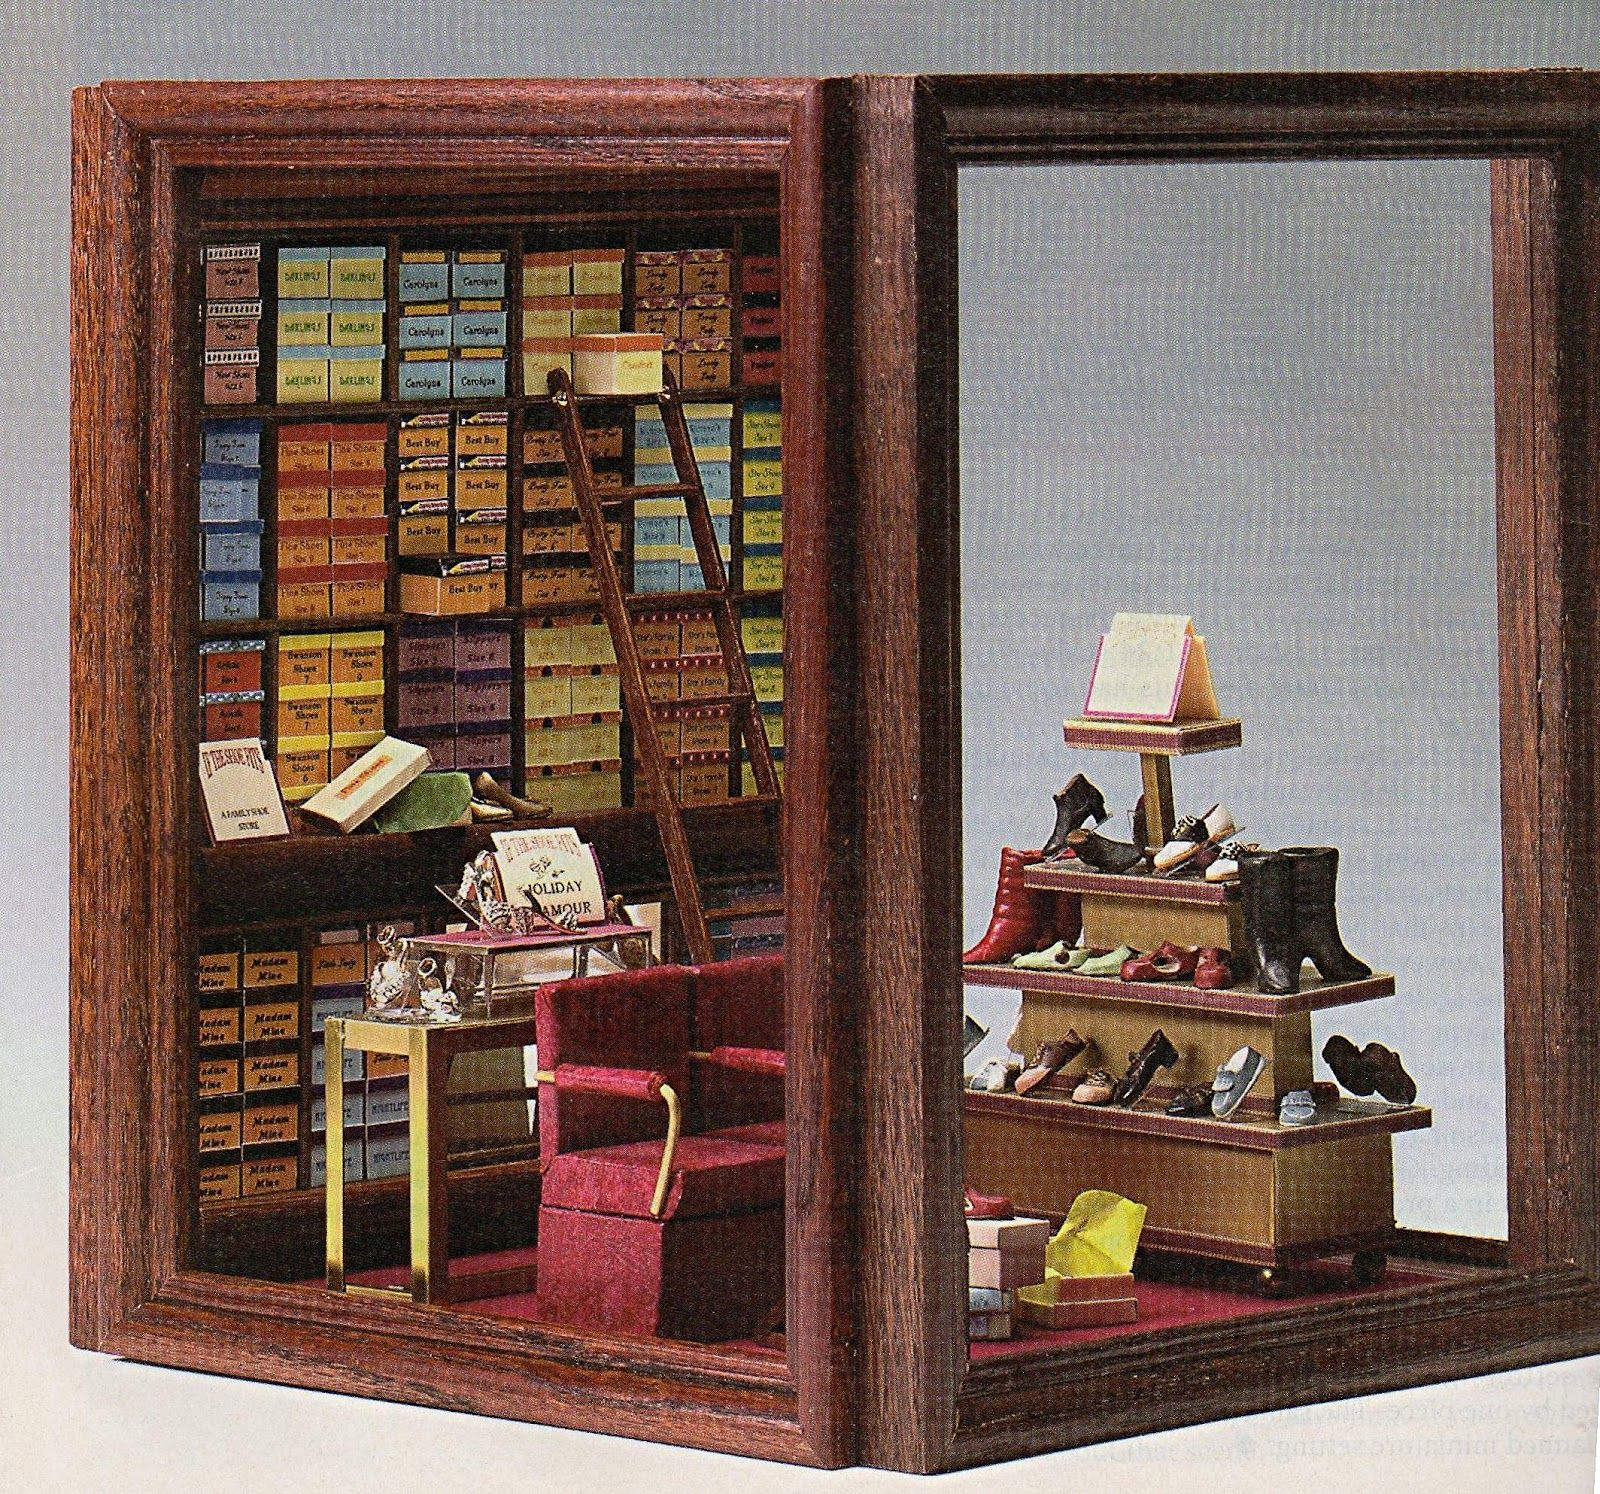 DYI DOLLHOUSE MINIATURES: MAKING ROOMS & DISPLAY BOXES FROM